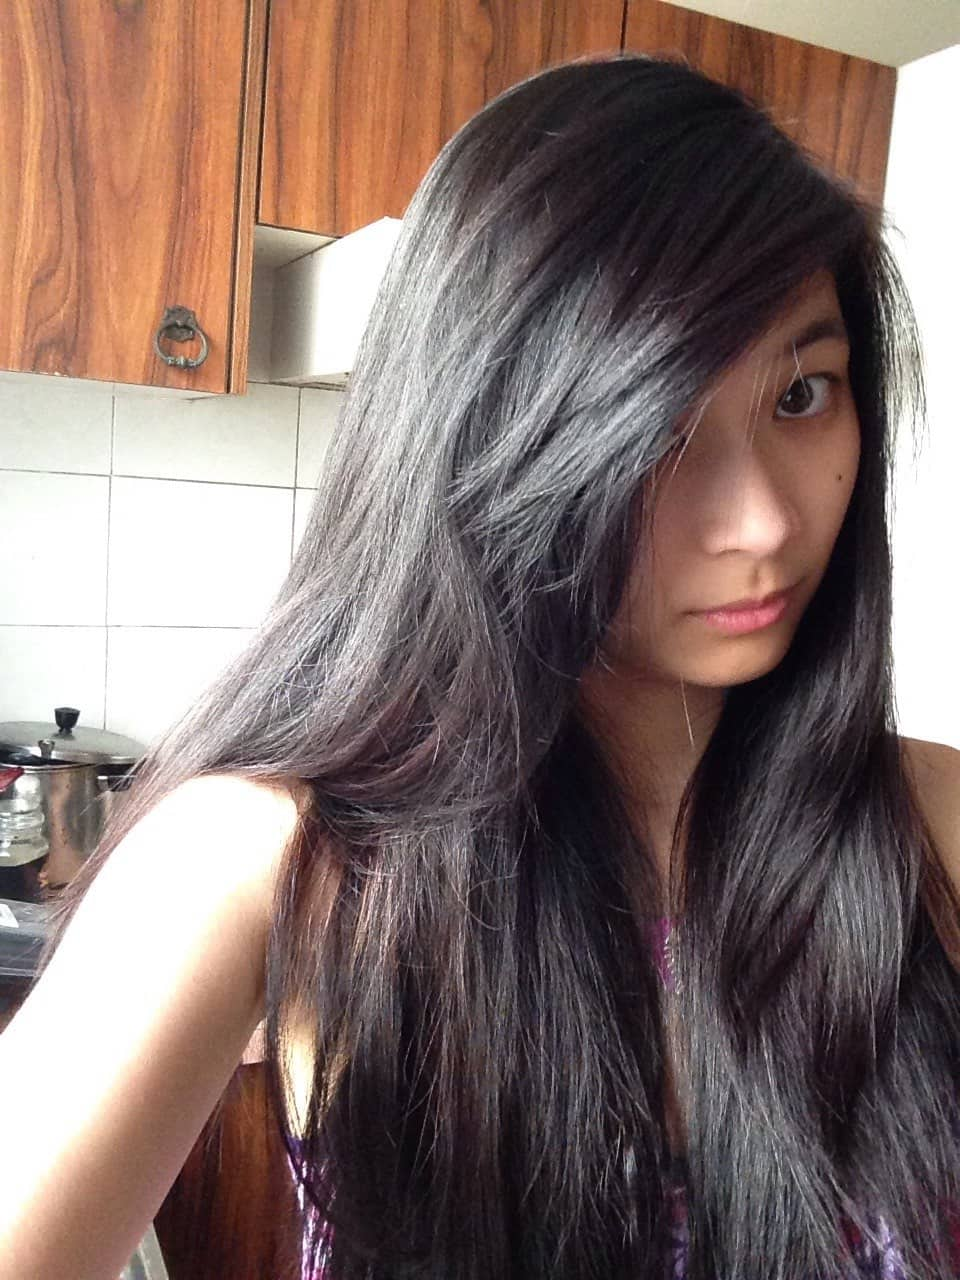 A girl taking a selfie with part of her long hair covering the side of her face. Her hair is black-purple in colour.